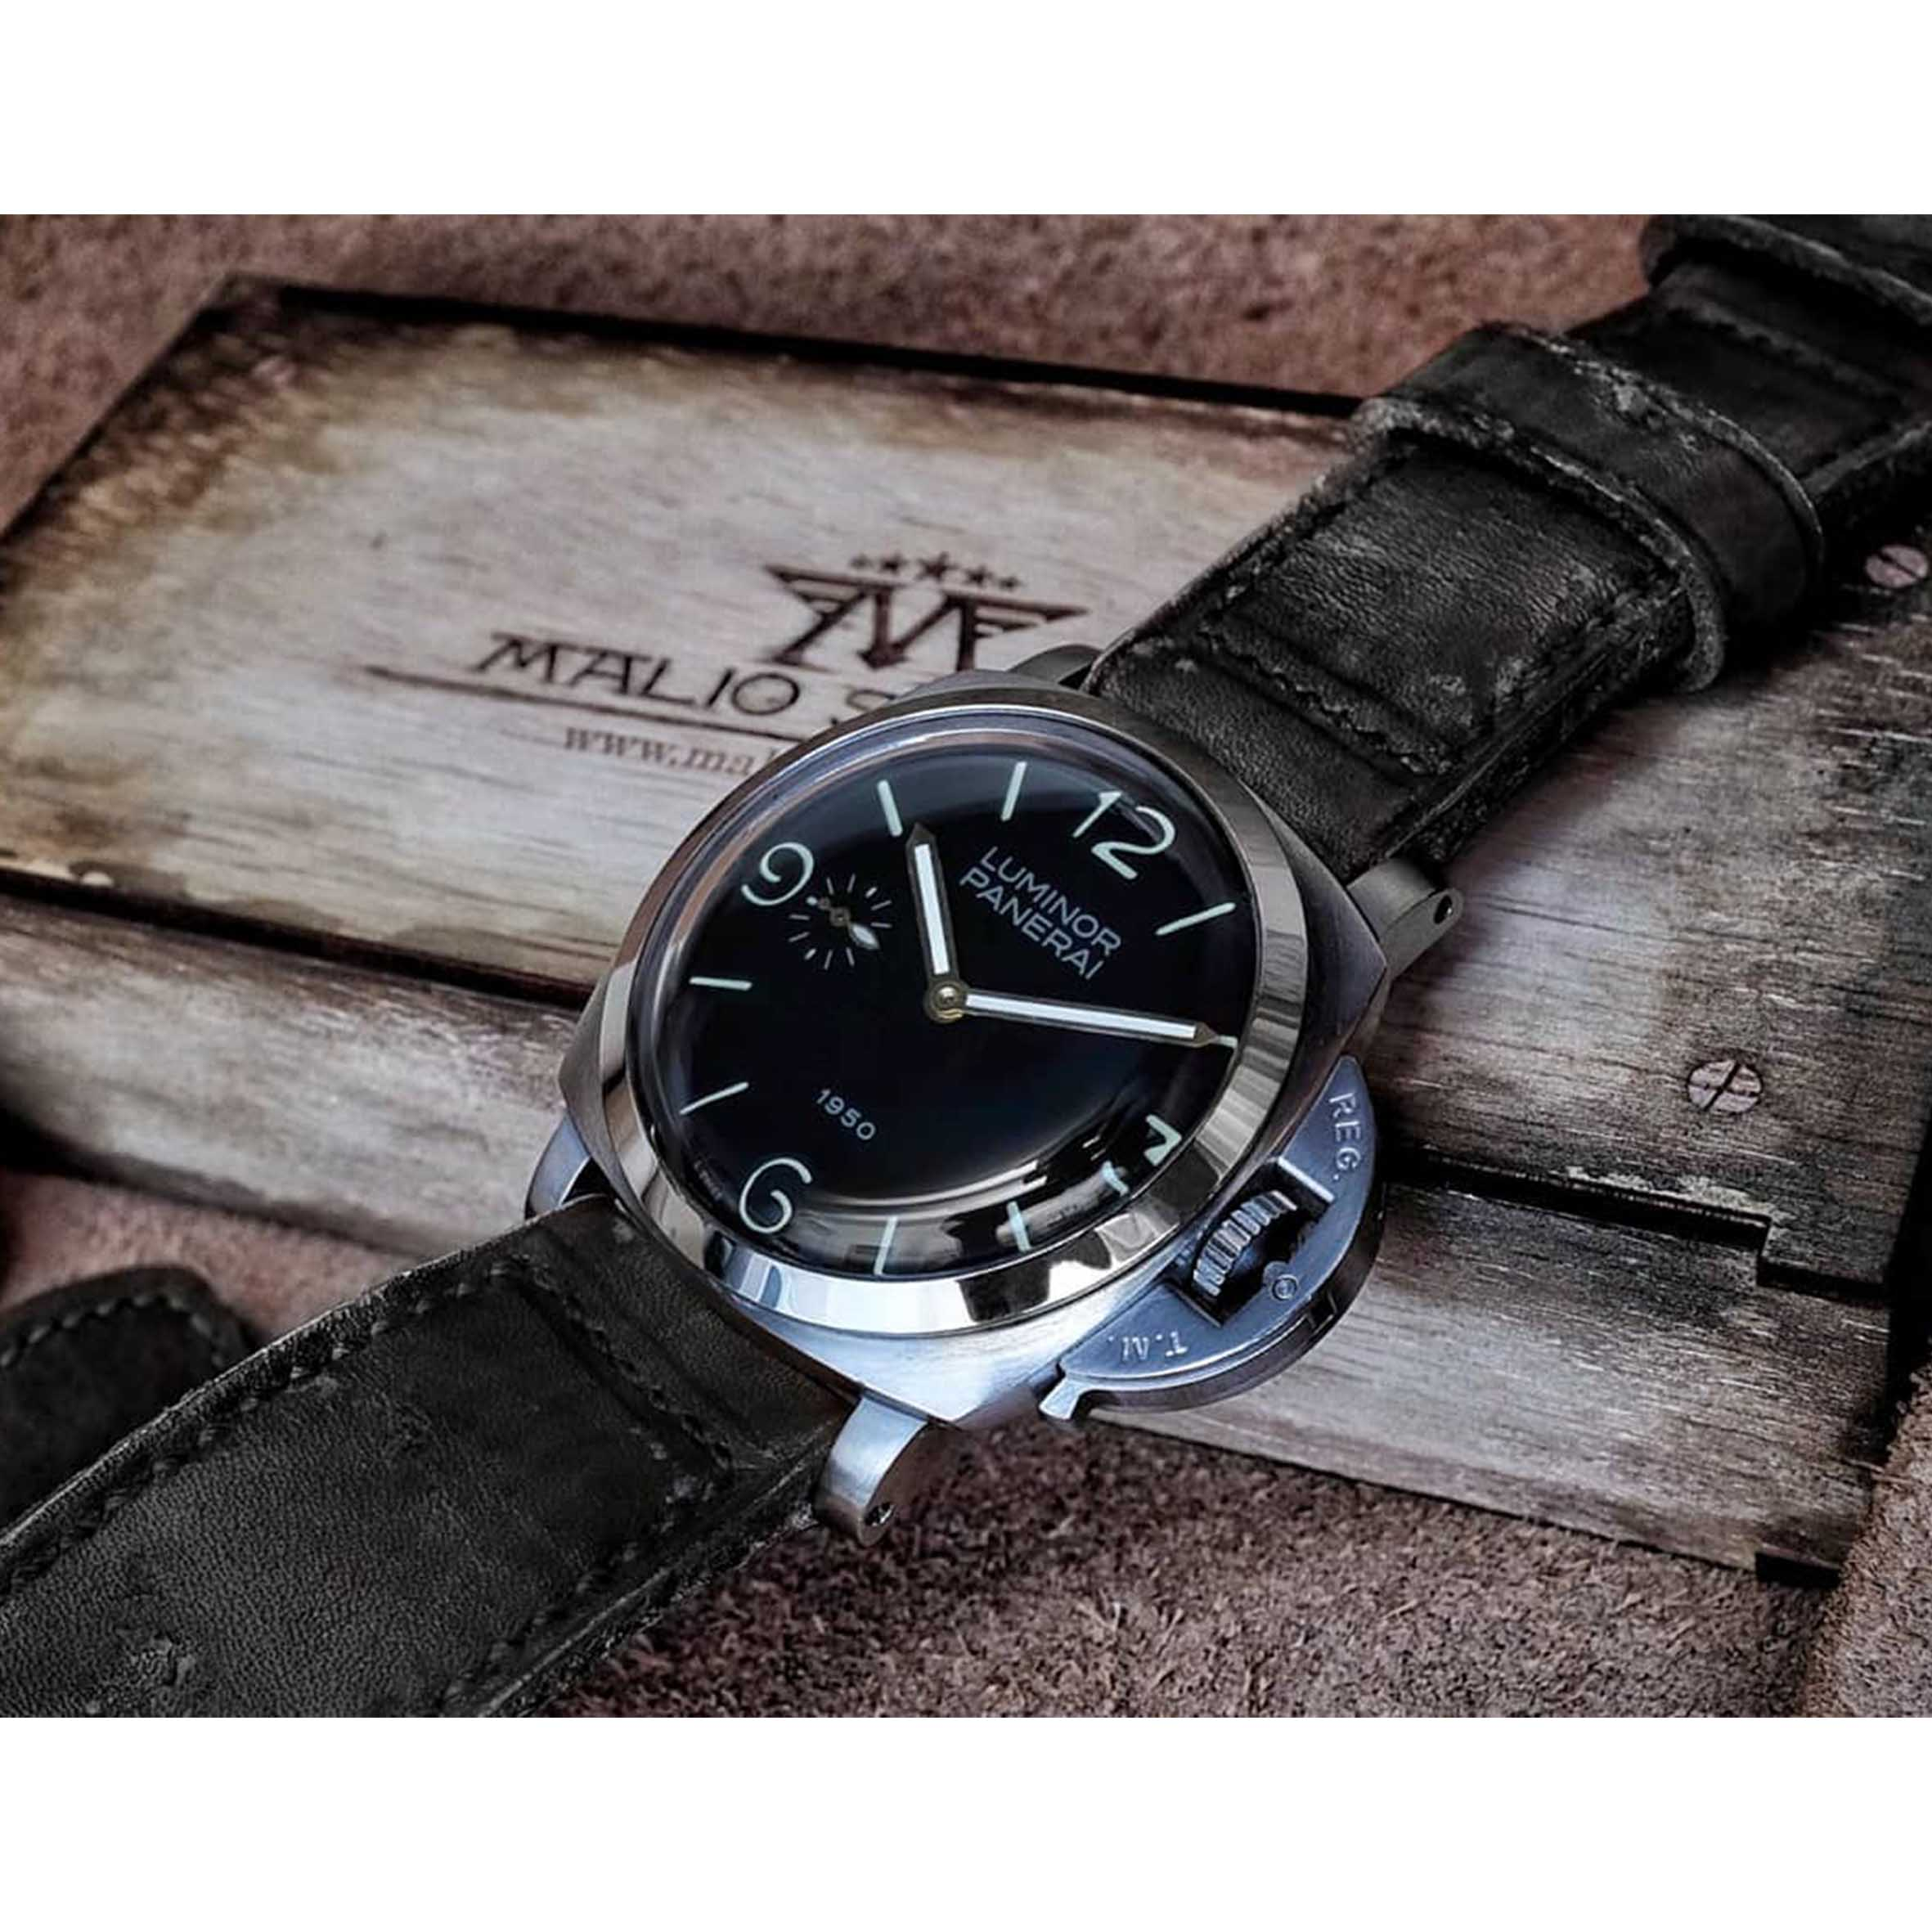 malio-straps-cannoneggiare-black-panerai-luminor